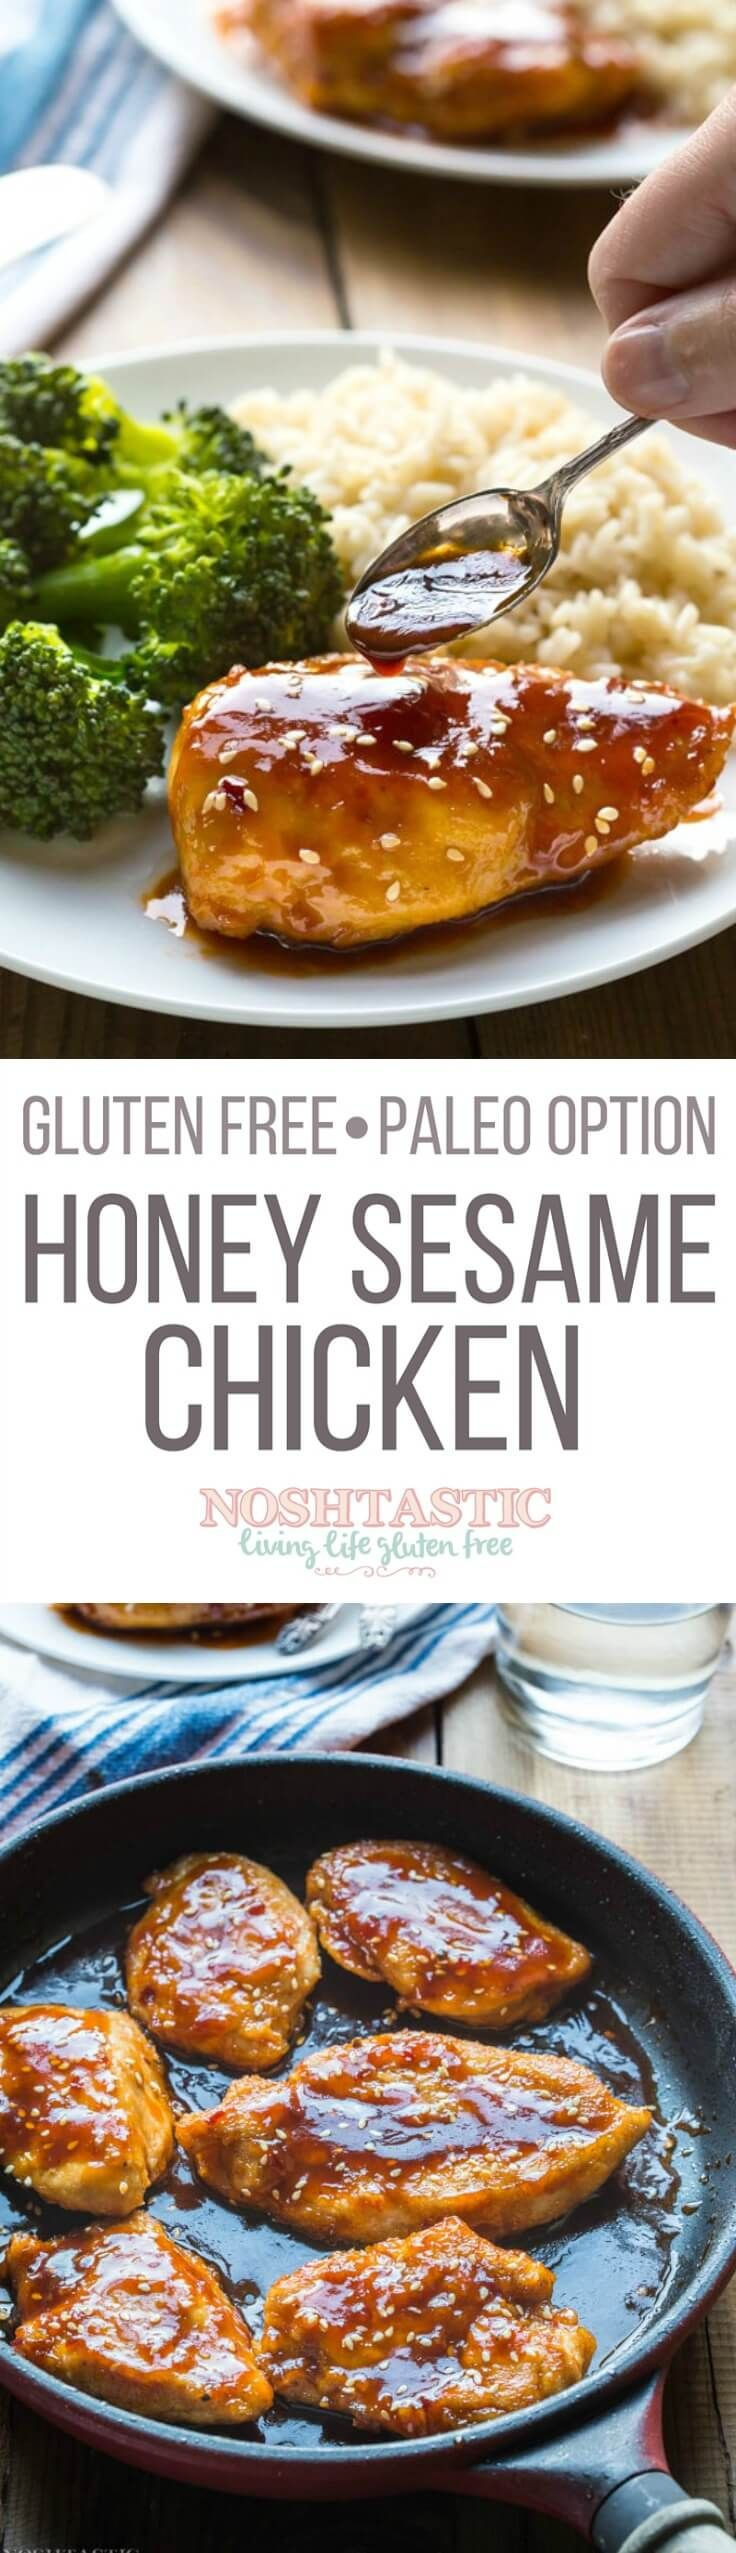 Quick, easy, and healthy too! this Gluten Free Sesame